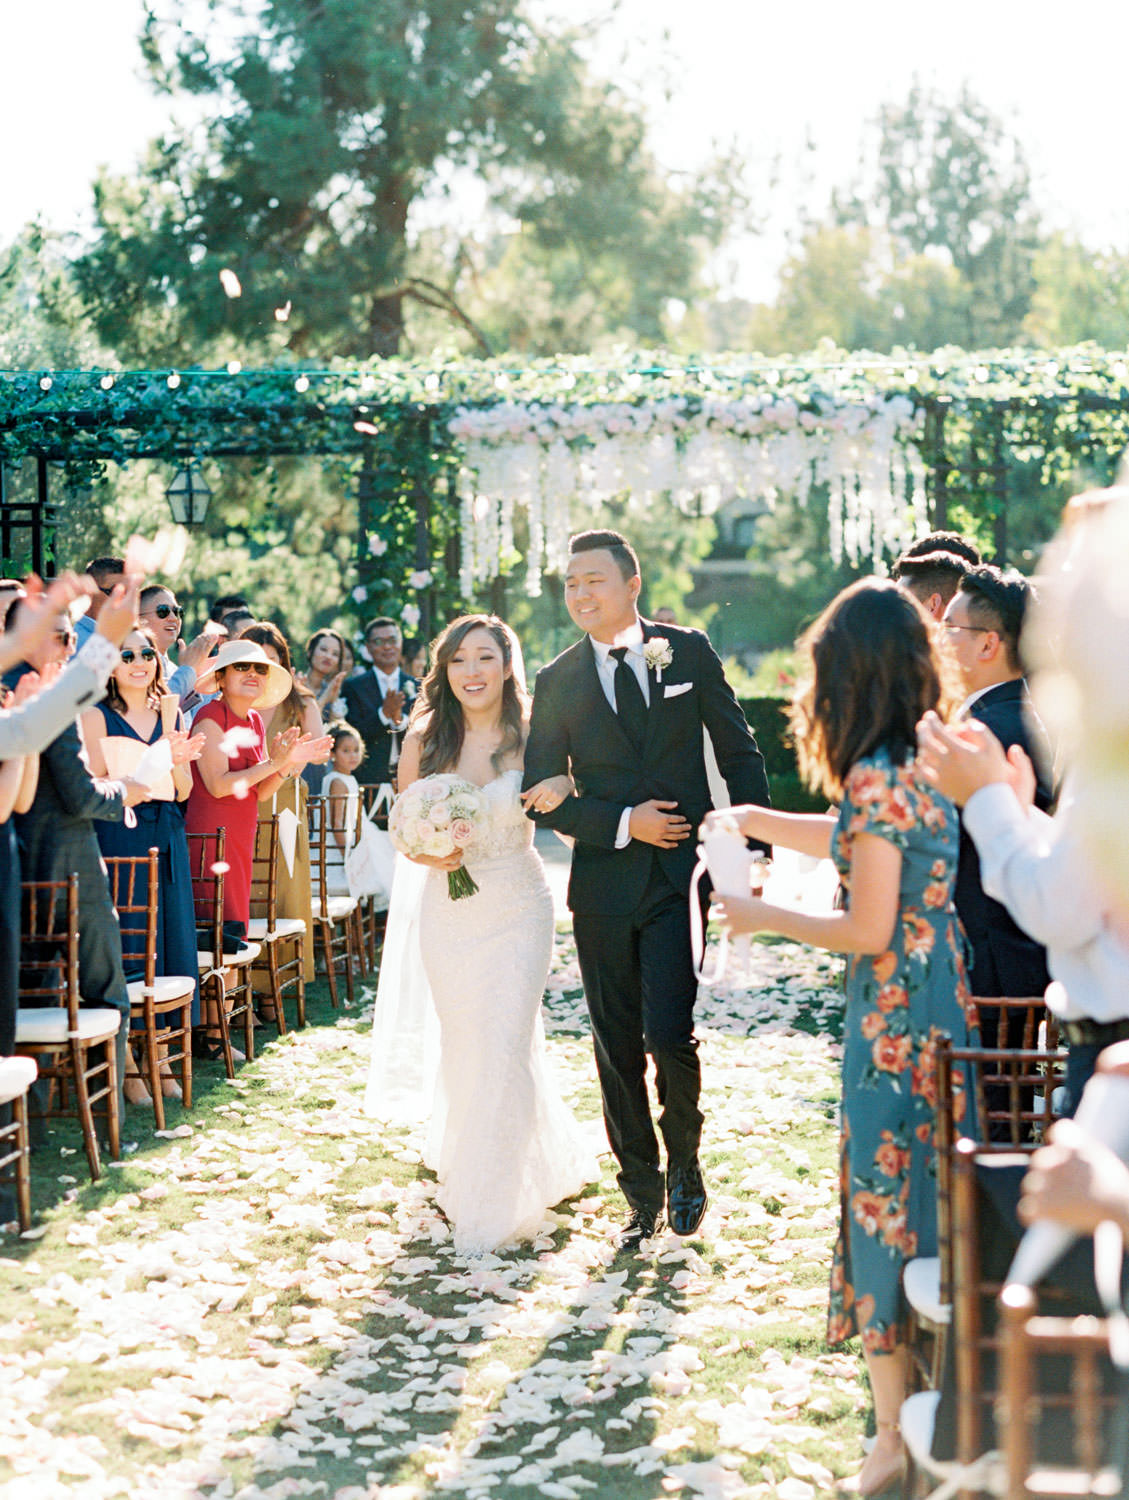 Bride and groom walking down the aisle with flowers thrown in the air in front of a Pergola wrapped in greenery with blush flowers on the side columns and hanging blush and ivory flowers in the center. Rancho Bernardo Inn Aragon lawn wedding ceremony. Film photo by Cavin Elizabeth Photography